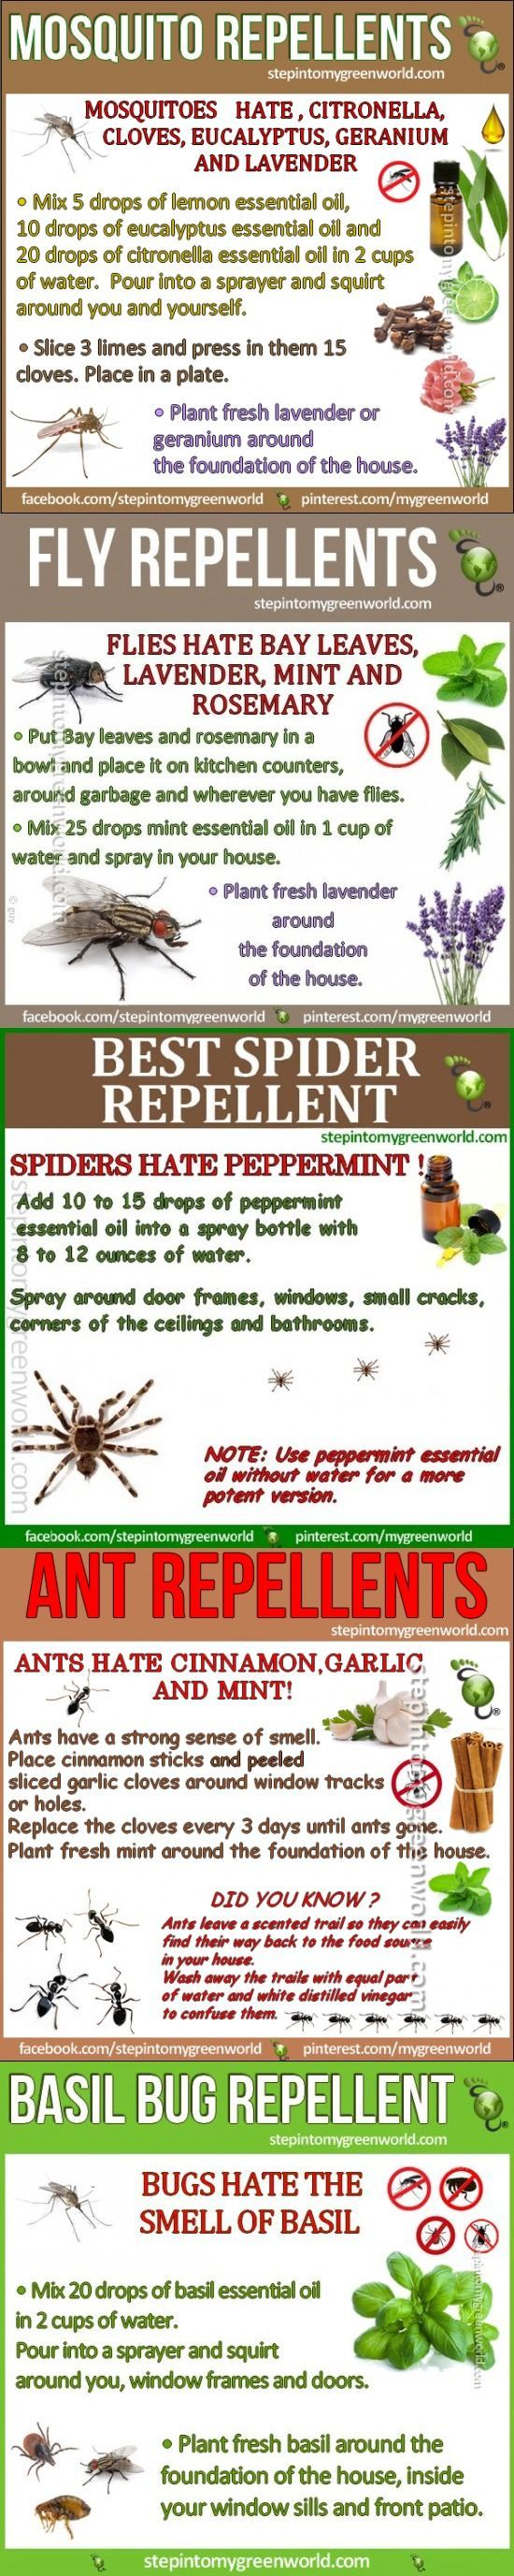 Best Homemade Mosquito And Insect Repellent http://campingtentlover.com/best-family-camping-tents/